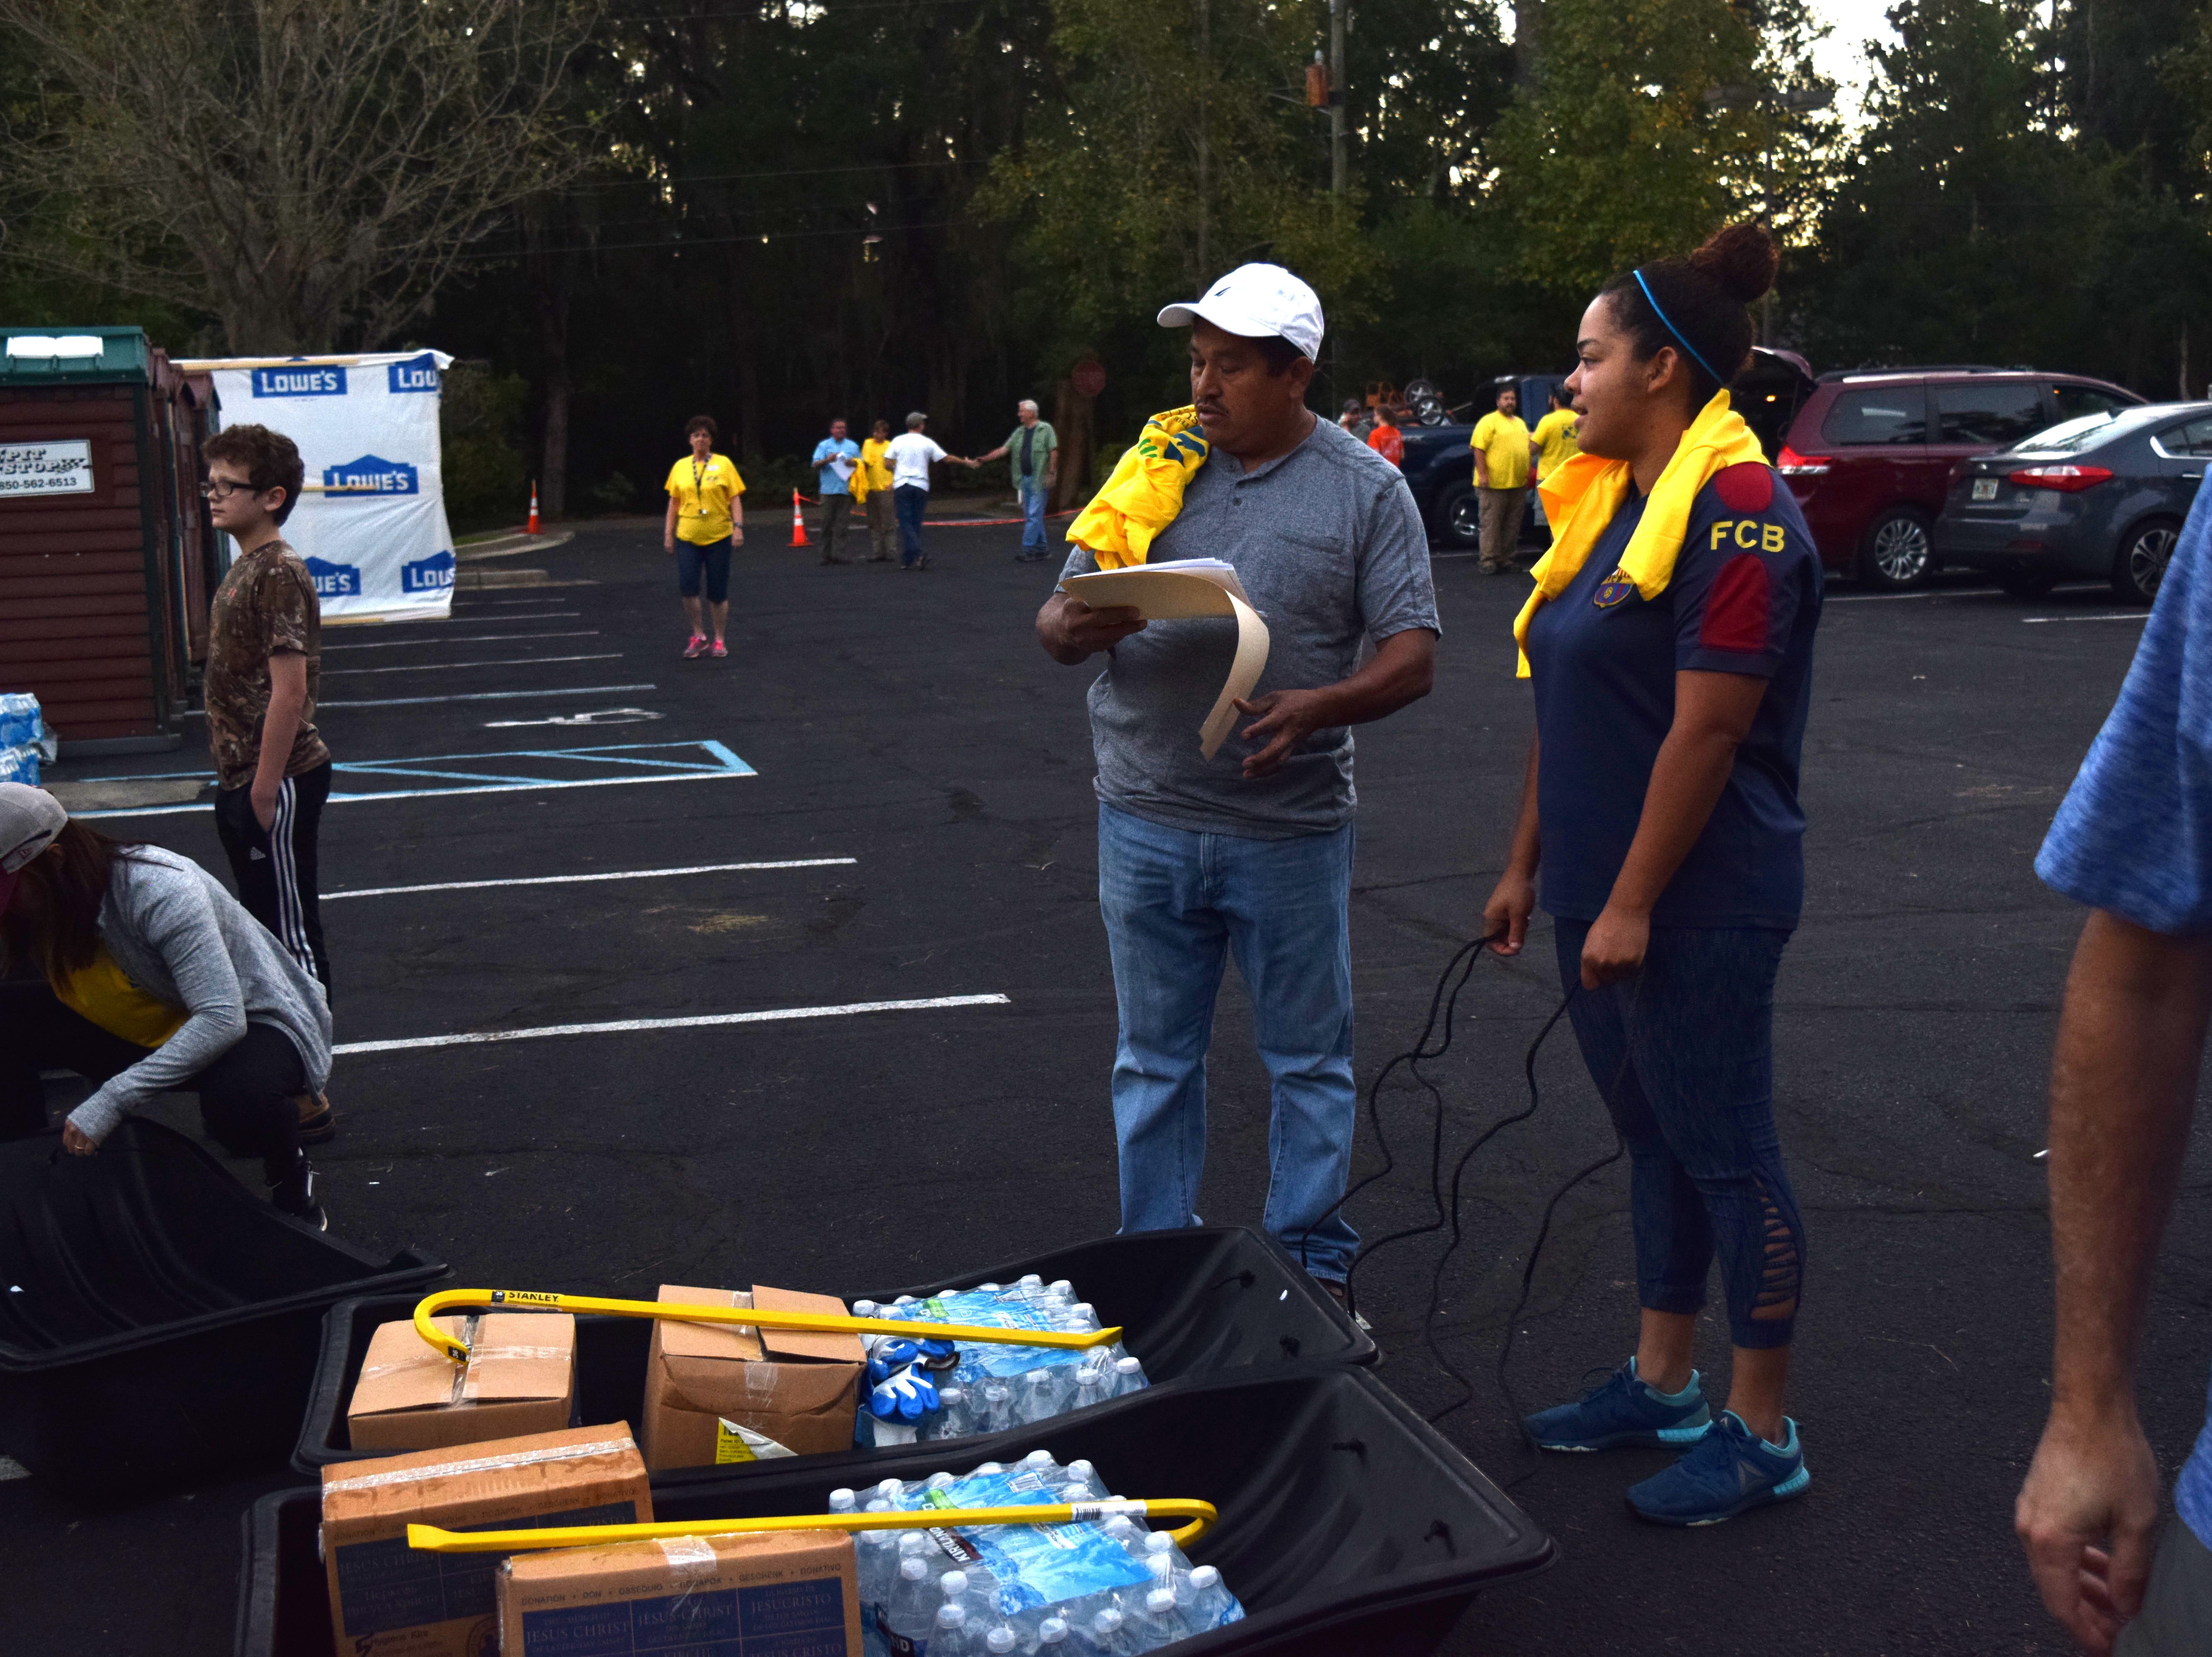 Volunteers collect supplies before heading out to provide recovery aid after Hurricane Michael.